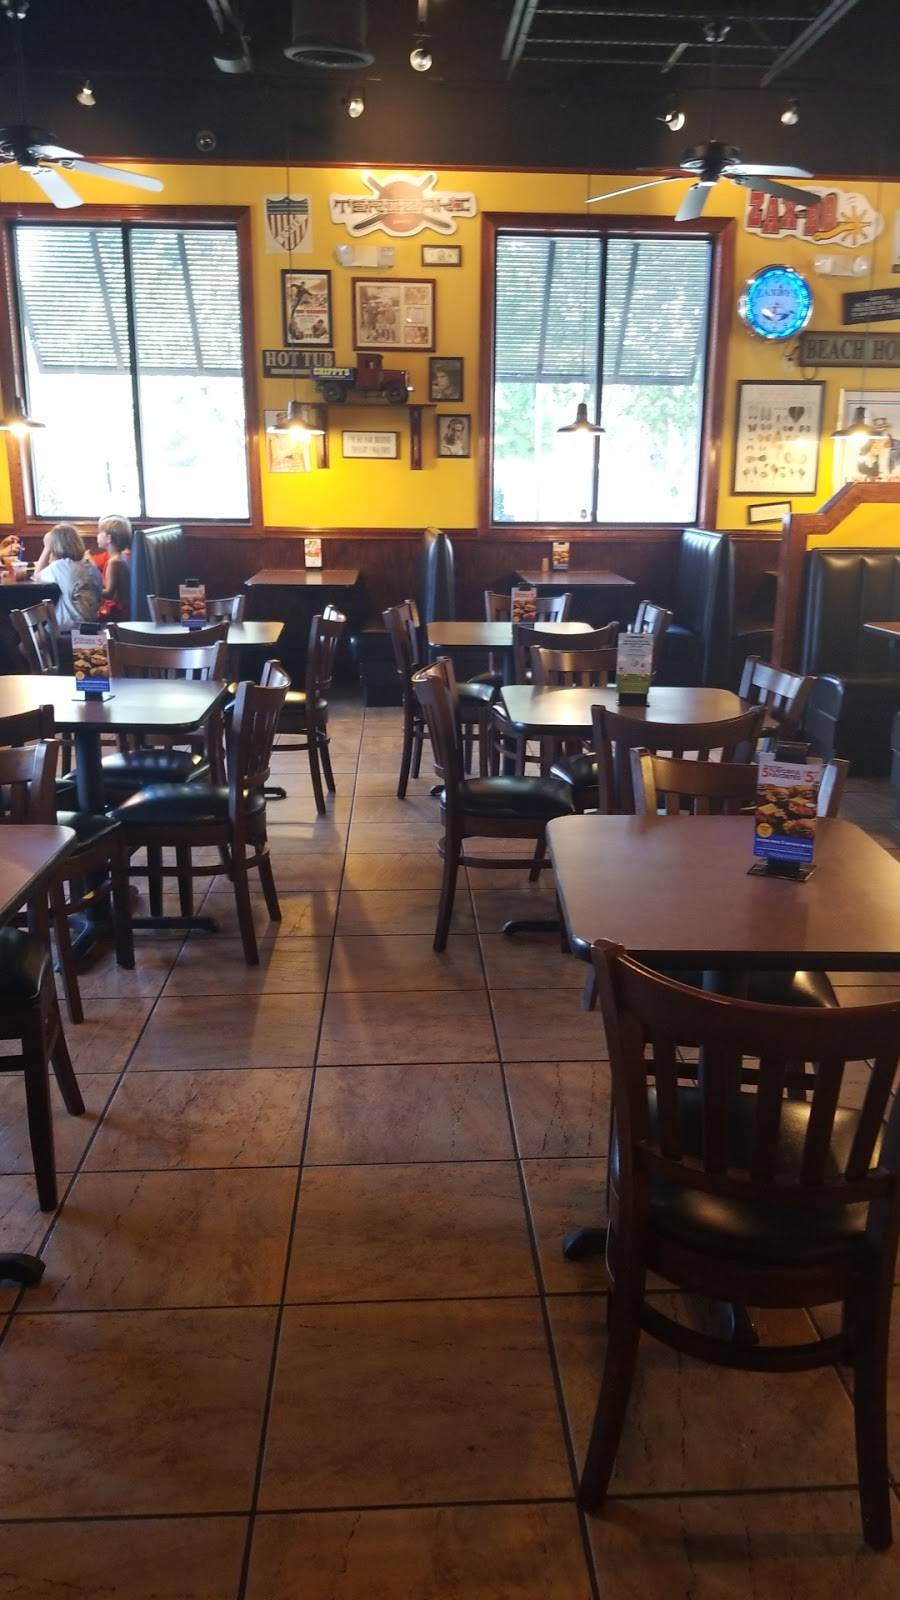 Zaxbys Chicken Fingers & Buffalo Wings | restaurant | 1018 Folly Rd, Charleston, SC 29412, USA | 8437621919 OR +1 843-762-1919